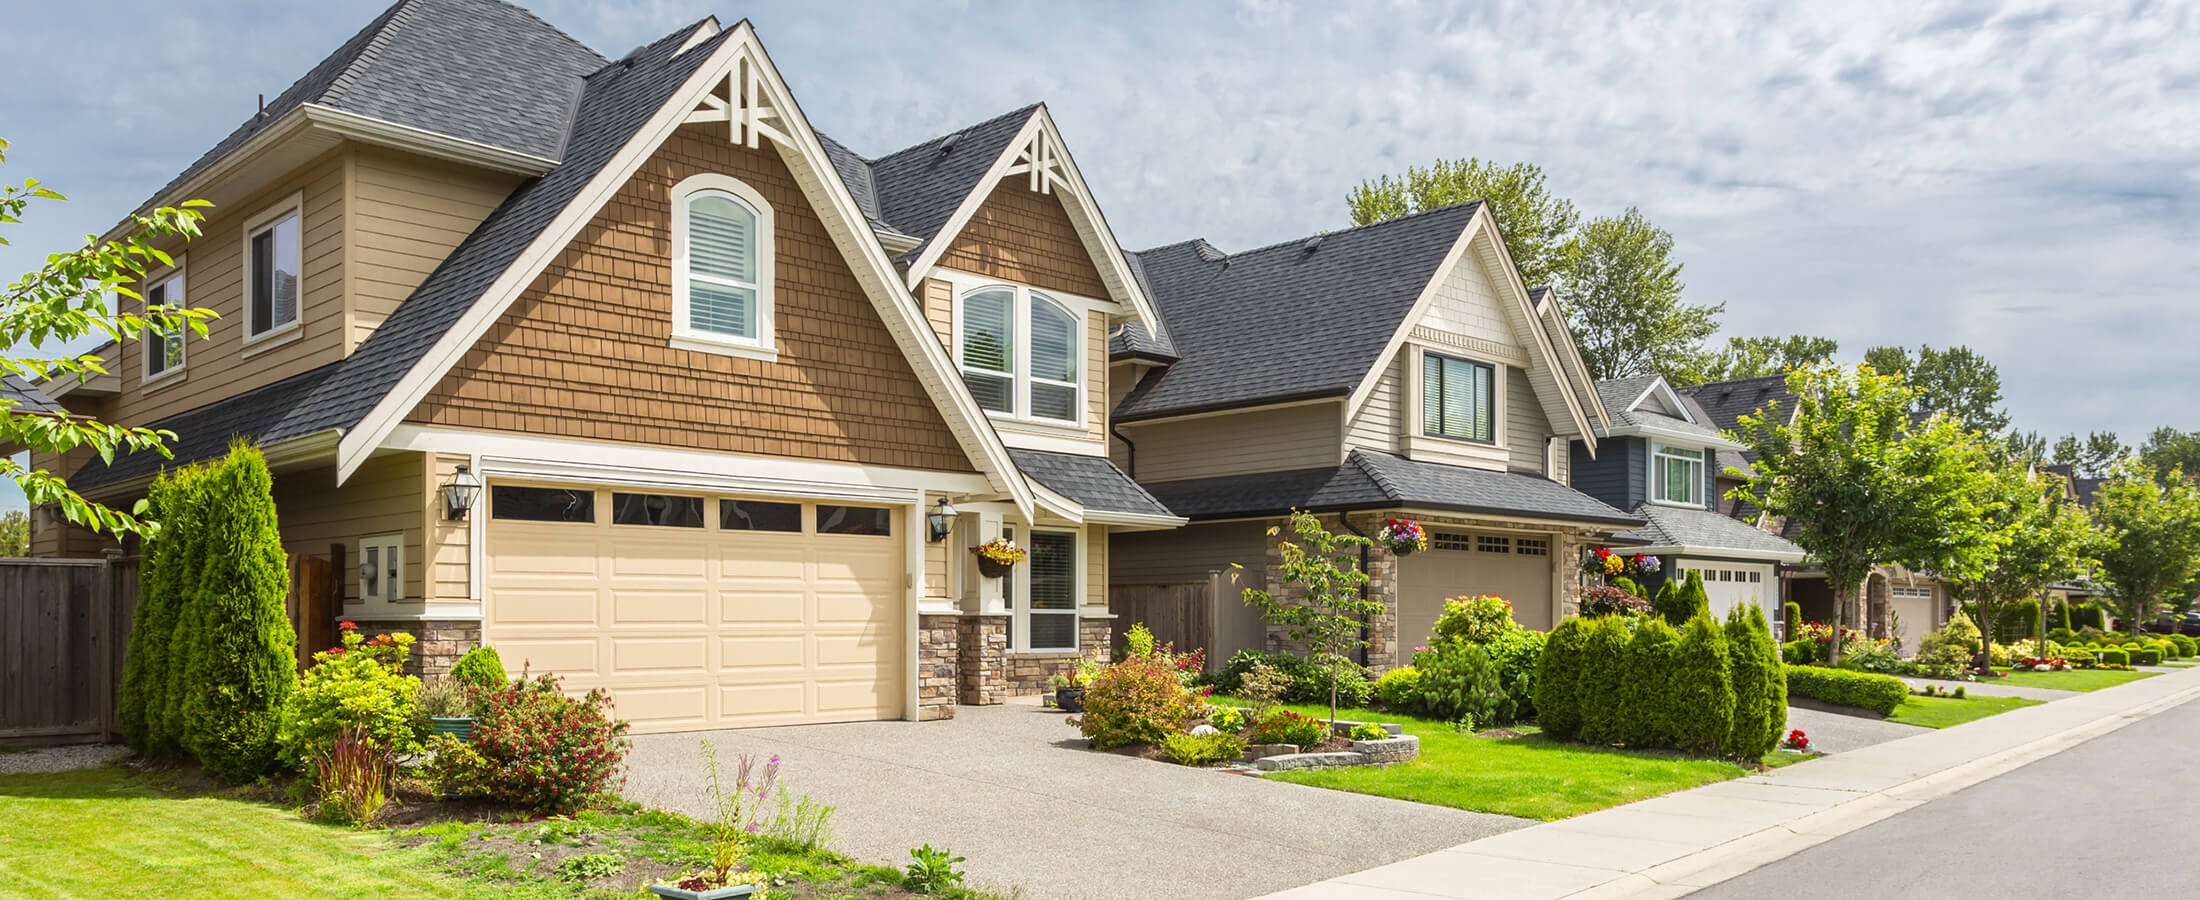 Chicago Western Suburbs Illinois Real Estate Listings